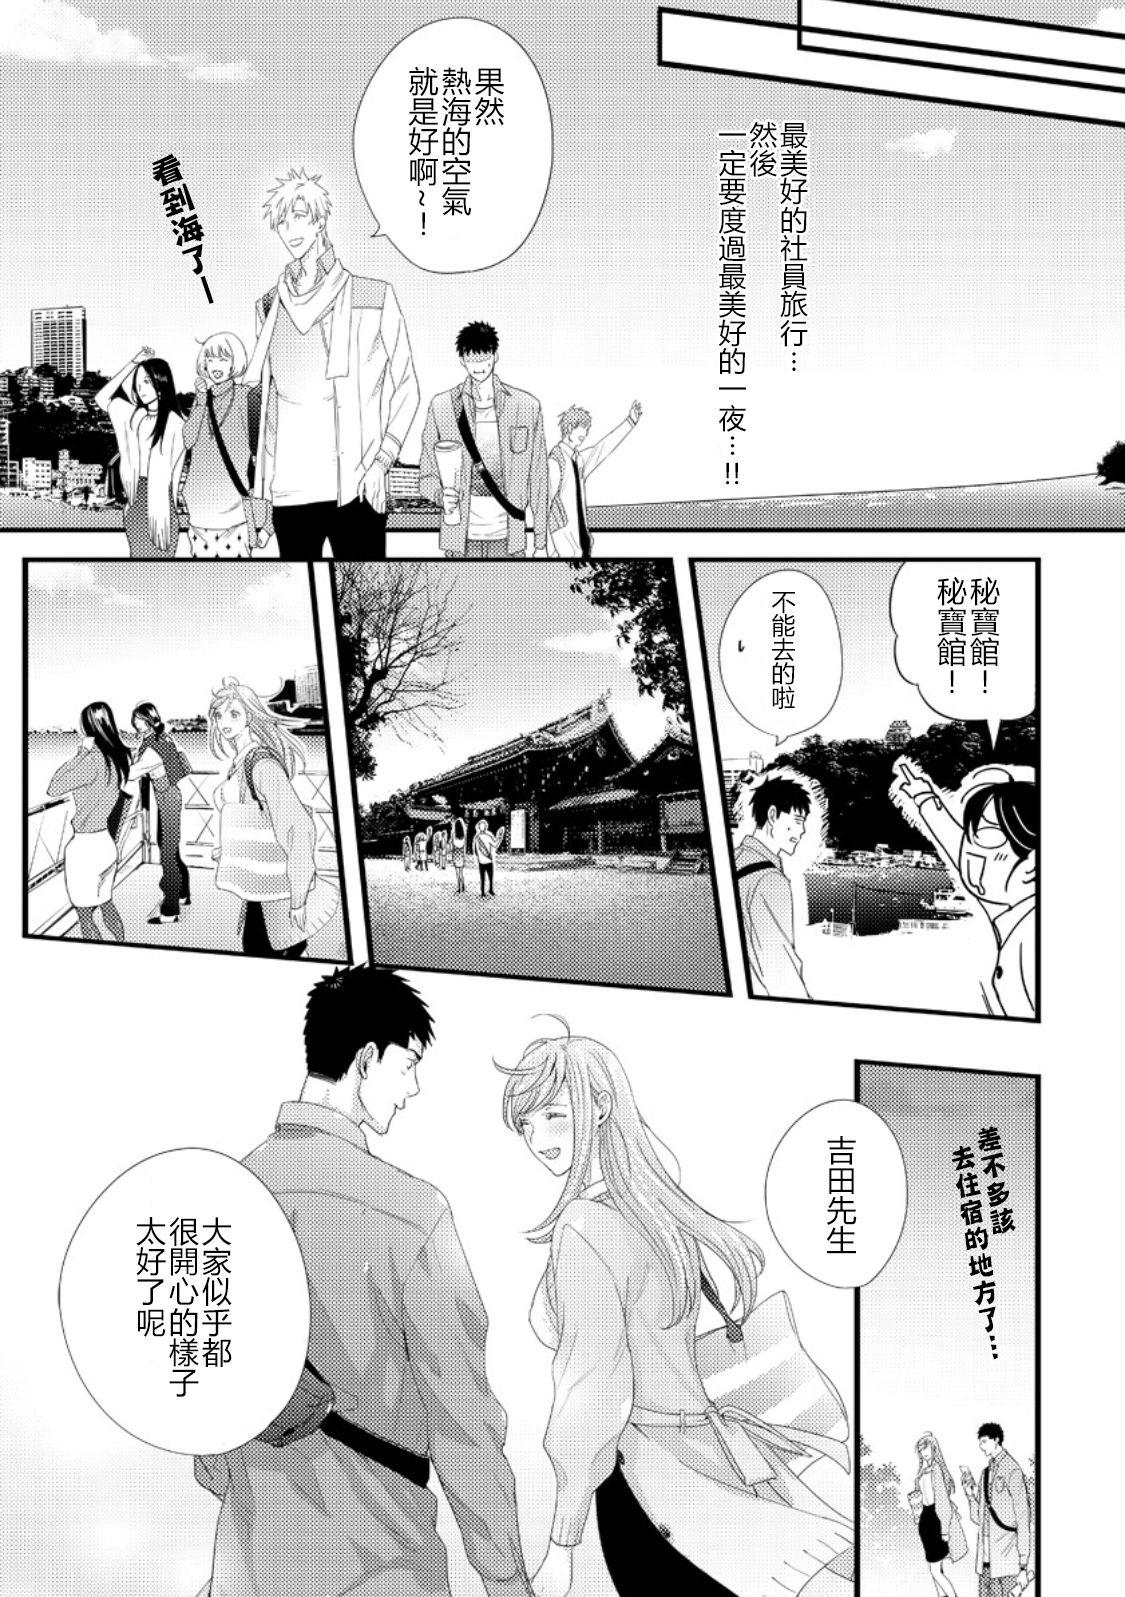 Please Let Me Hold You Futaba-San! Ch.1 8